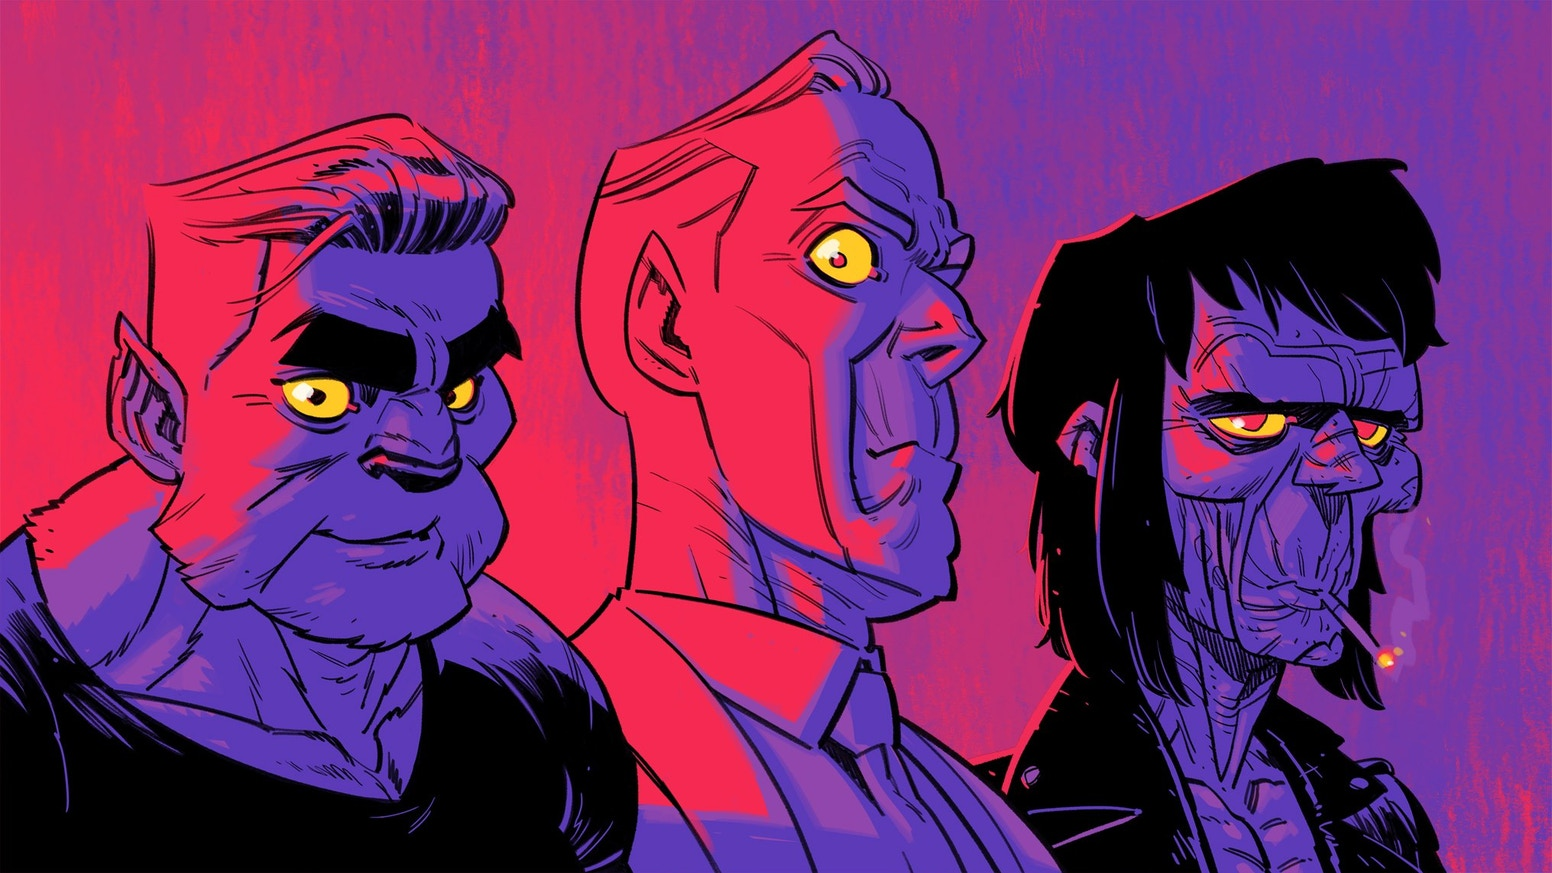 X-Files meets the Monster Squad when a werewolf, a vampire, and a zombie open a detective agency. A 36-page comic book epic!